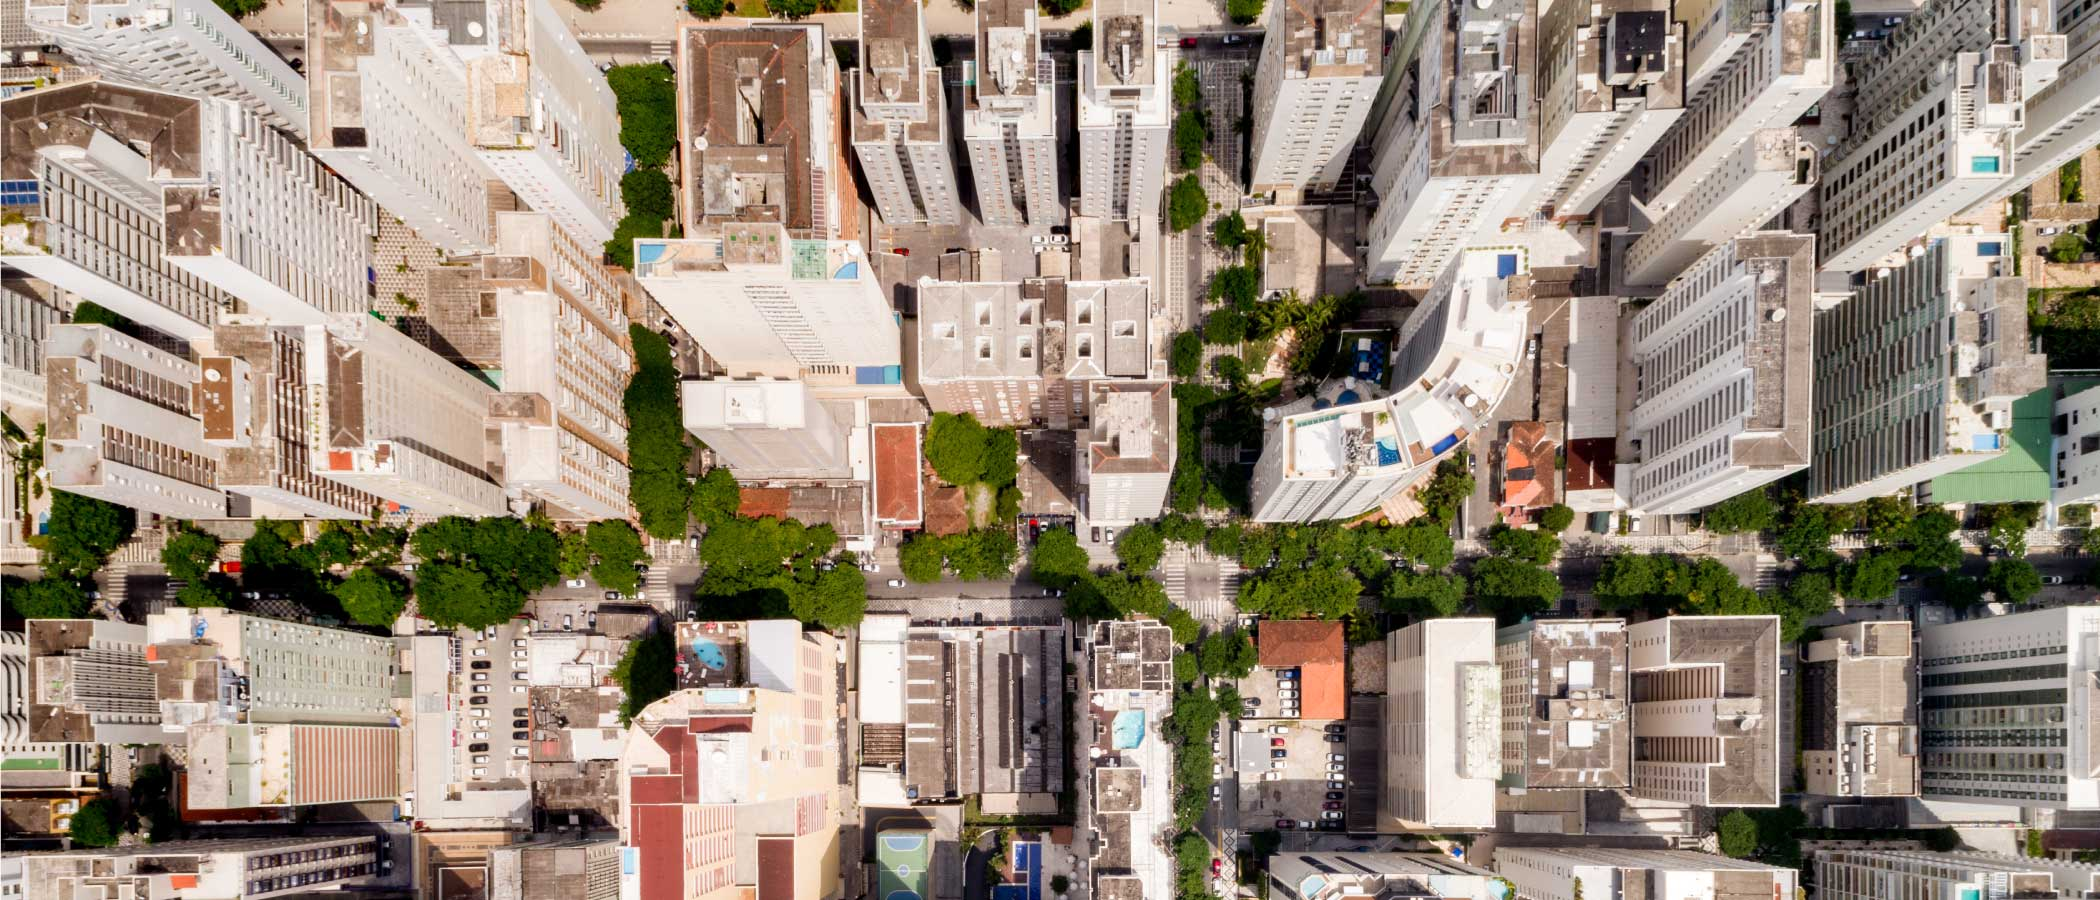 Aerial view of an urban residential neighborhood with apartment towers, courtyards, and open space.